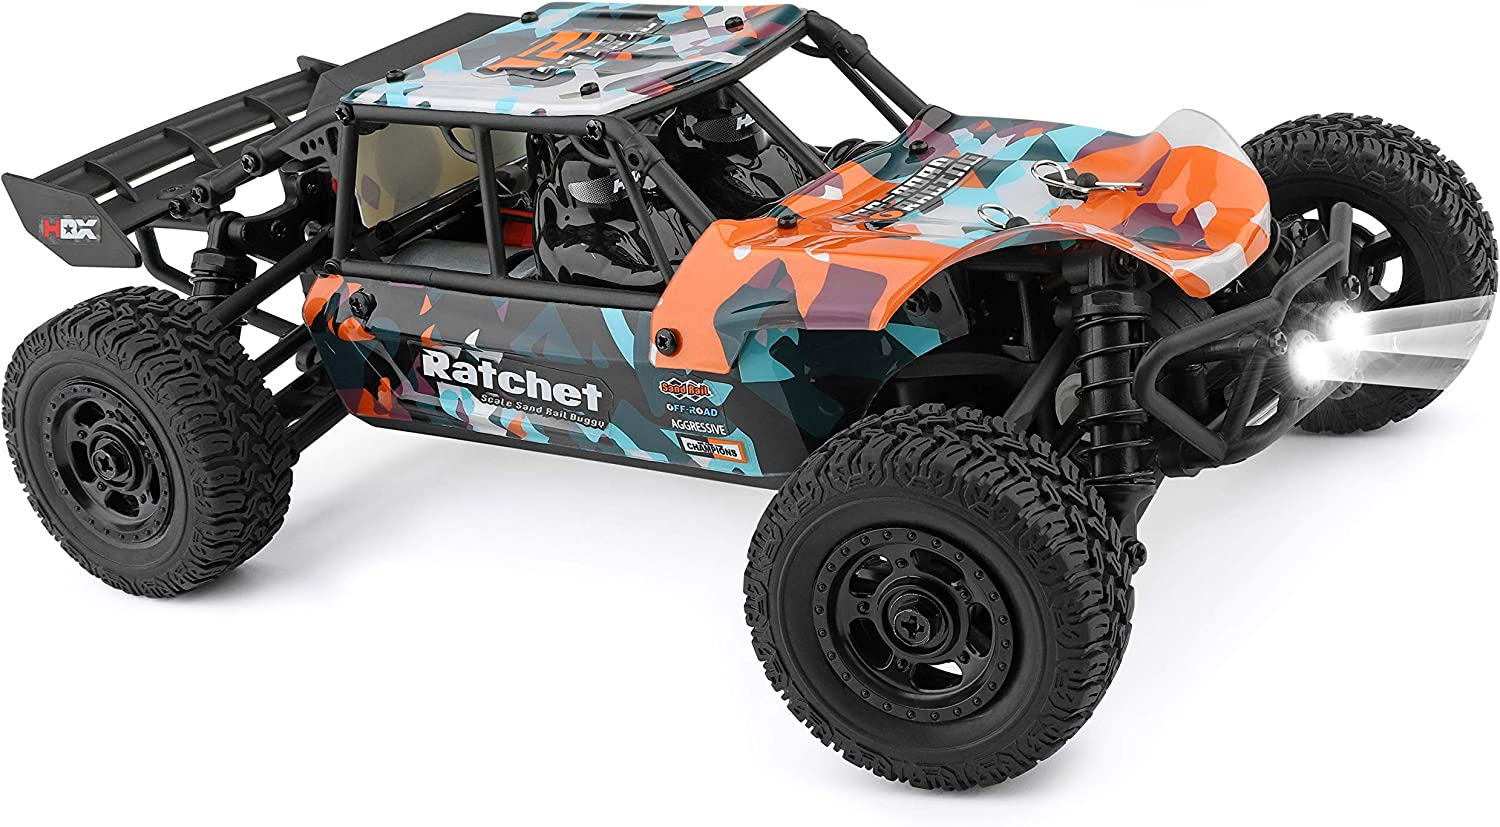 Amazon Com Haiboxing Rc Cars 1 18 Scale 4wd Off Road Buggy 36 Km H High Speed 18856 2 4 Ghz All Terrain Waterproof Radio Controlled Trucks Hobby Grade Rtr Electric Remote Controlled Car For Kids And Adults Toys